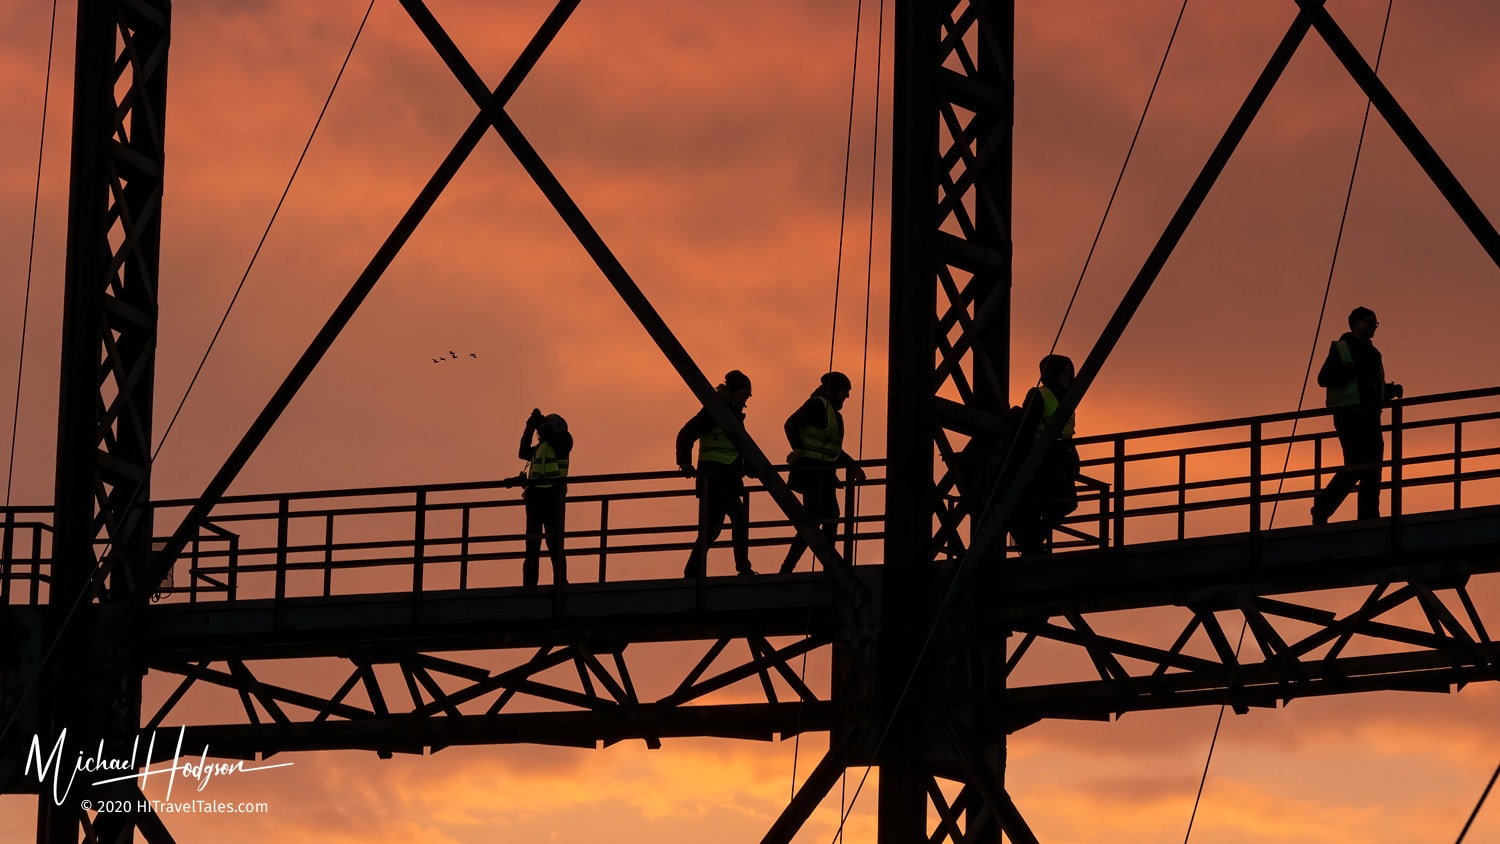 Silhouettes in the sunset on the catwalk of the gasometer.